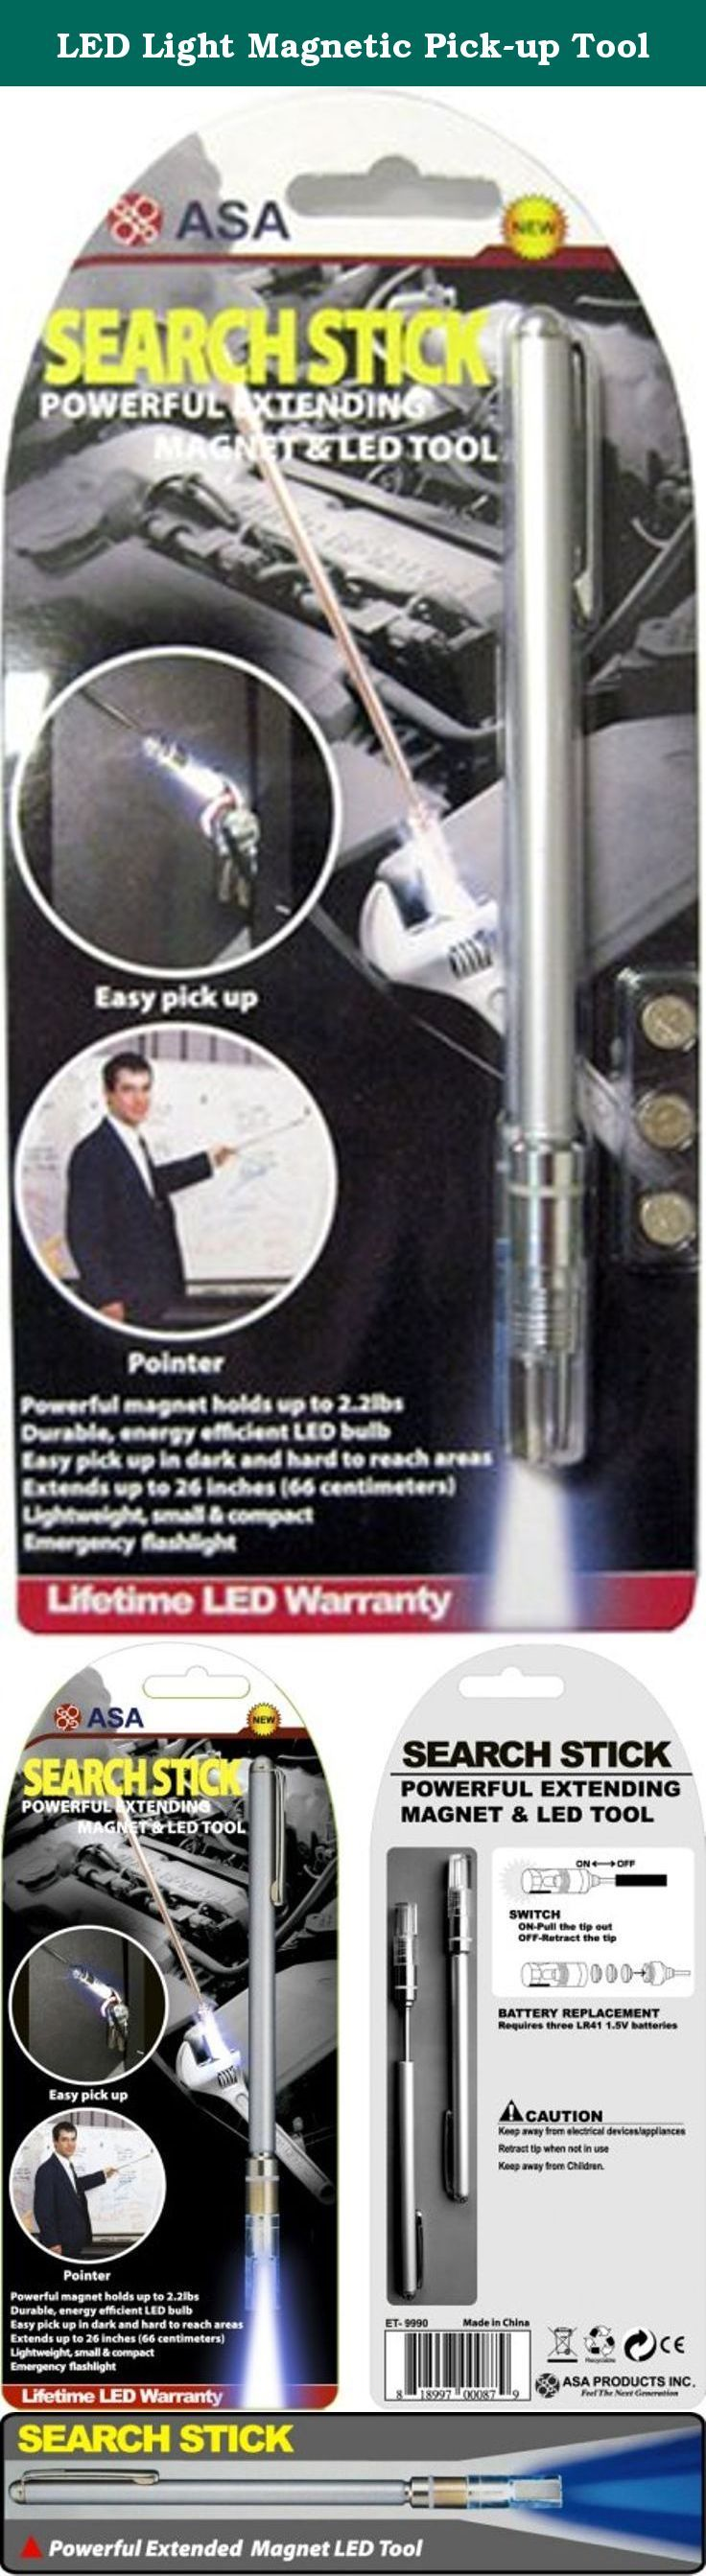 LED Light Magnetic Pick-up Tool. *Long life LED bulb for long-lasting light *Easy to pick up objects in narrow & dark spaces *Adjustable length 17cm to 66cm *Light weight, small & compact *Emergency flash light *Conduct baton.